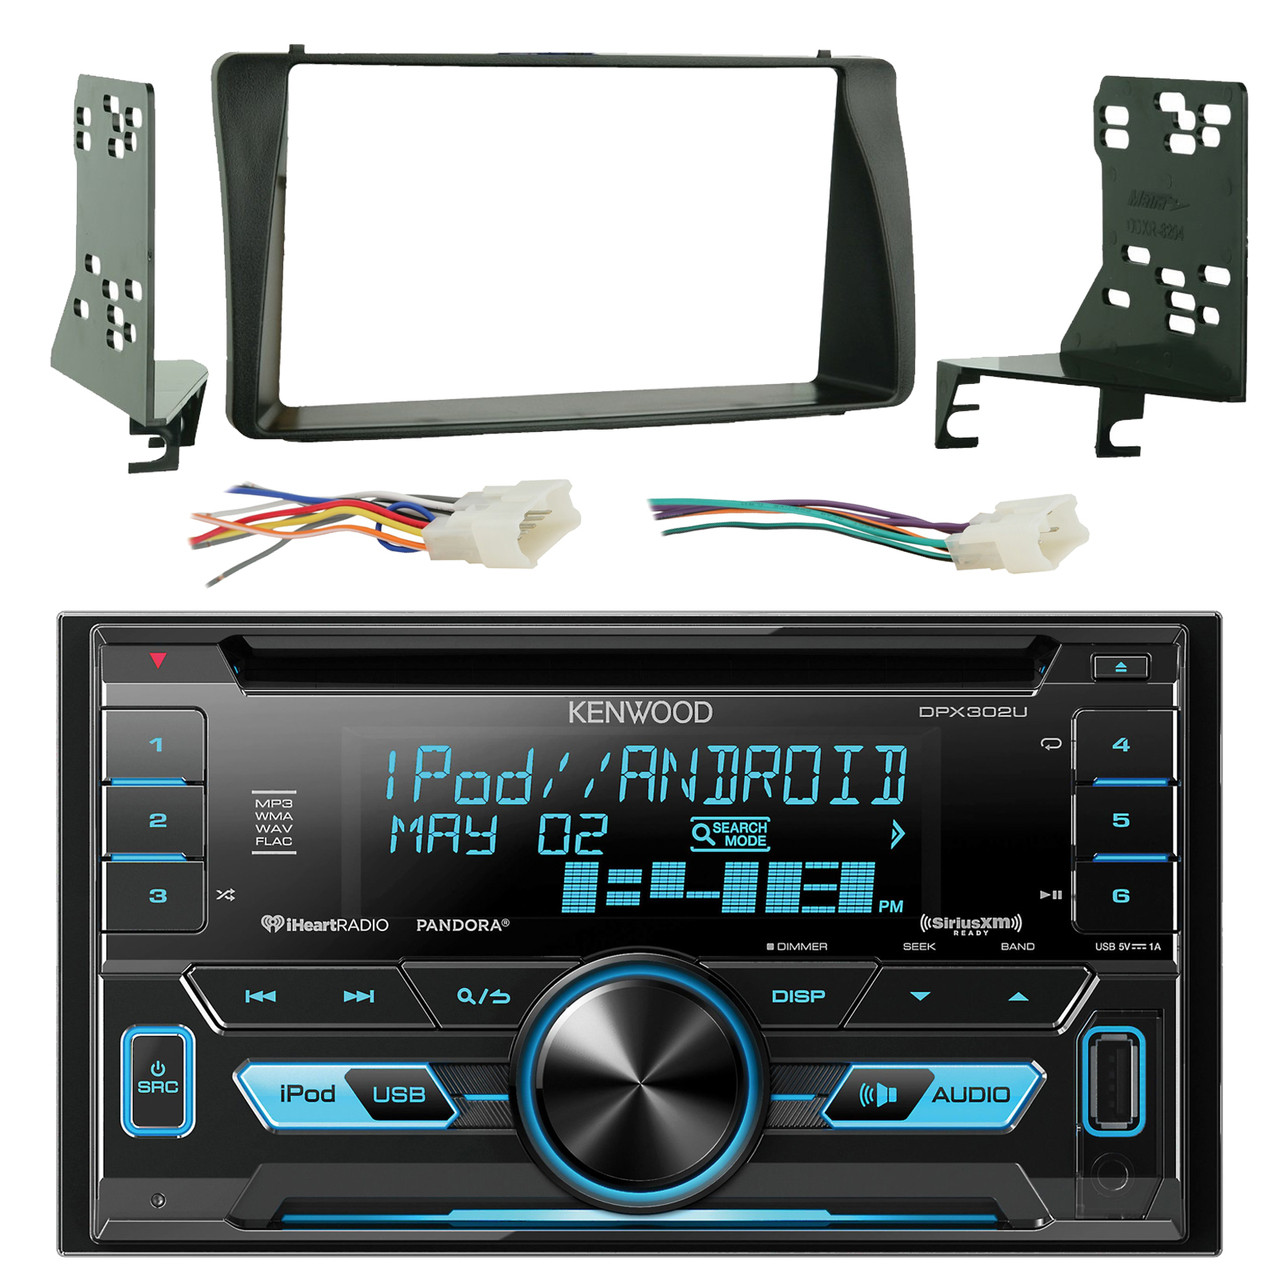 small resolution of kenwood dpx302u double 2 din cd receiver with front usb aux inputs sirius xm